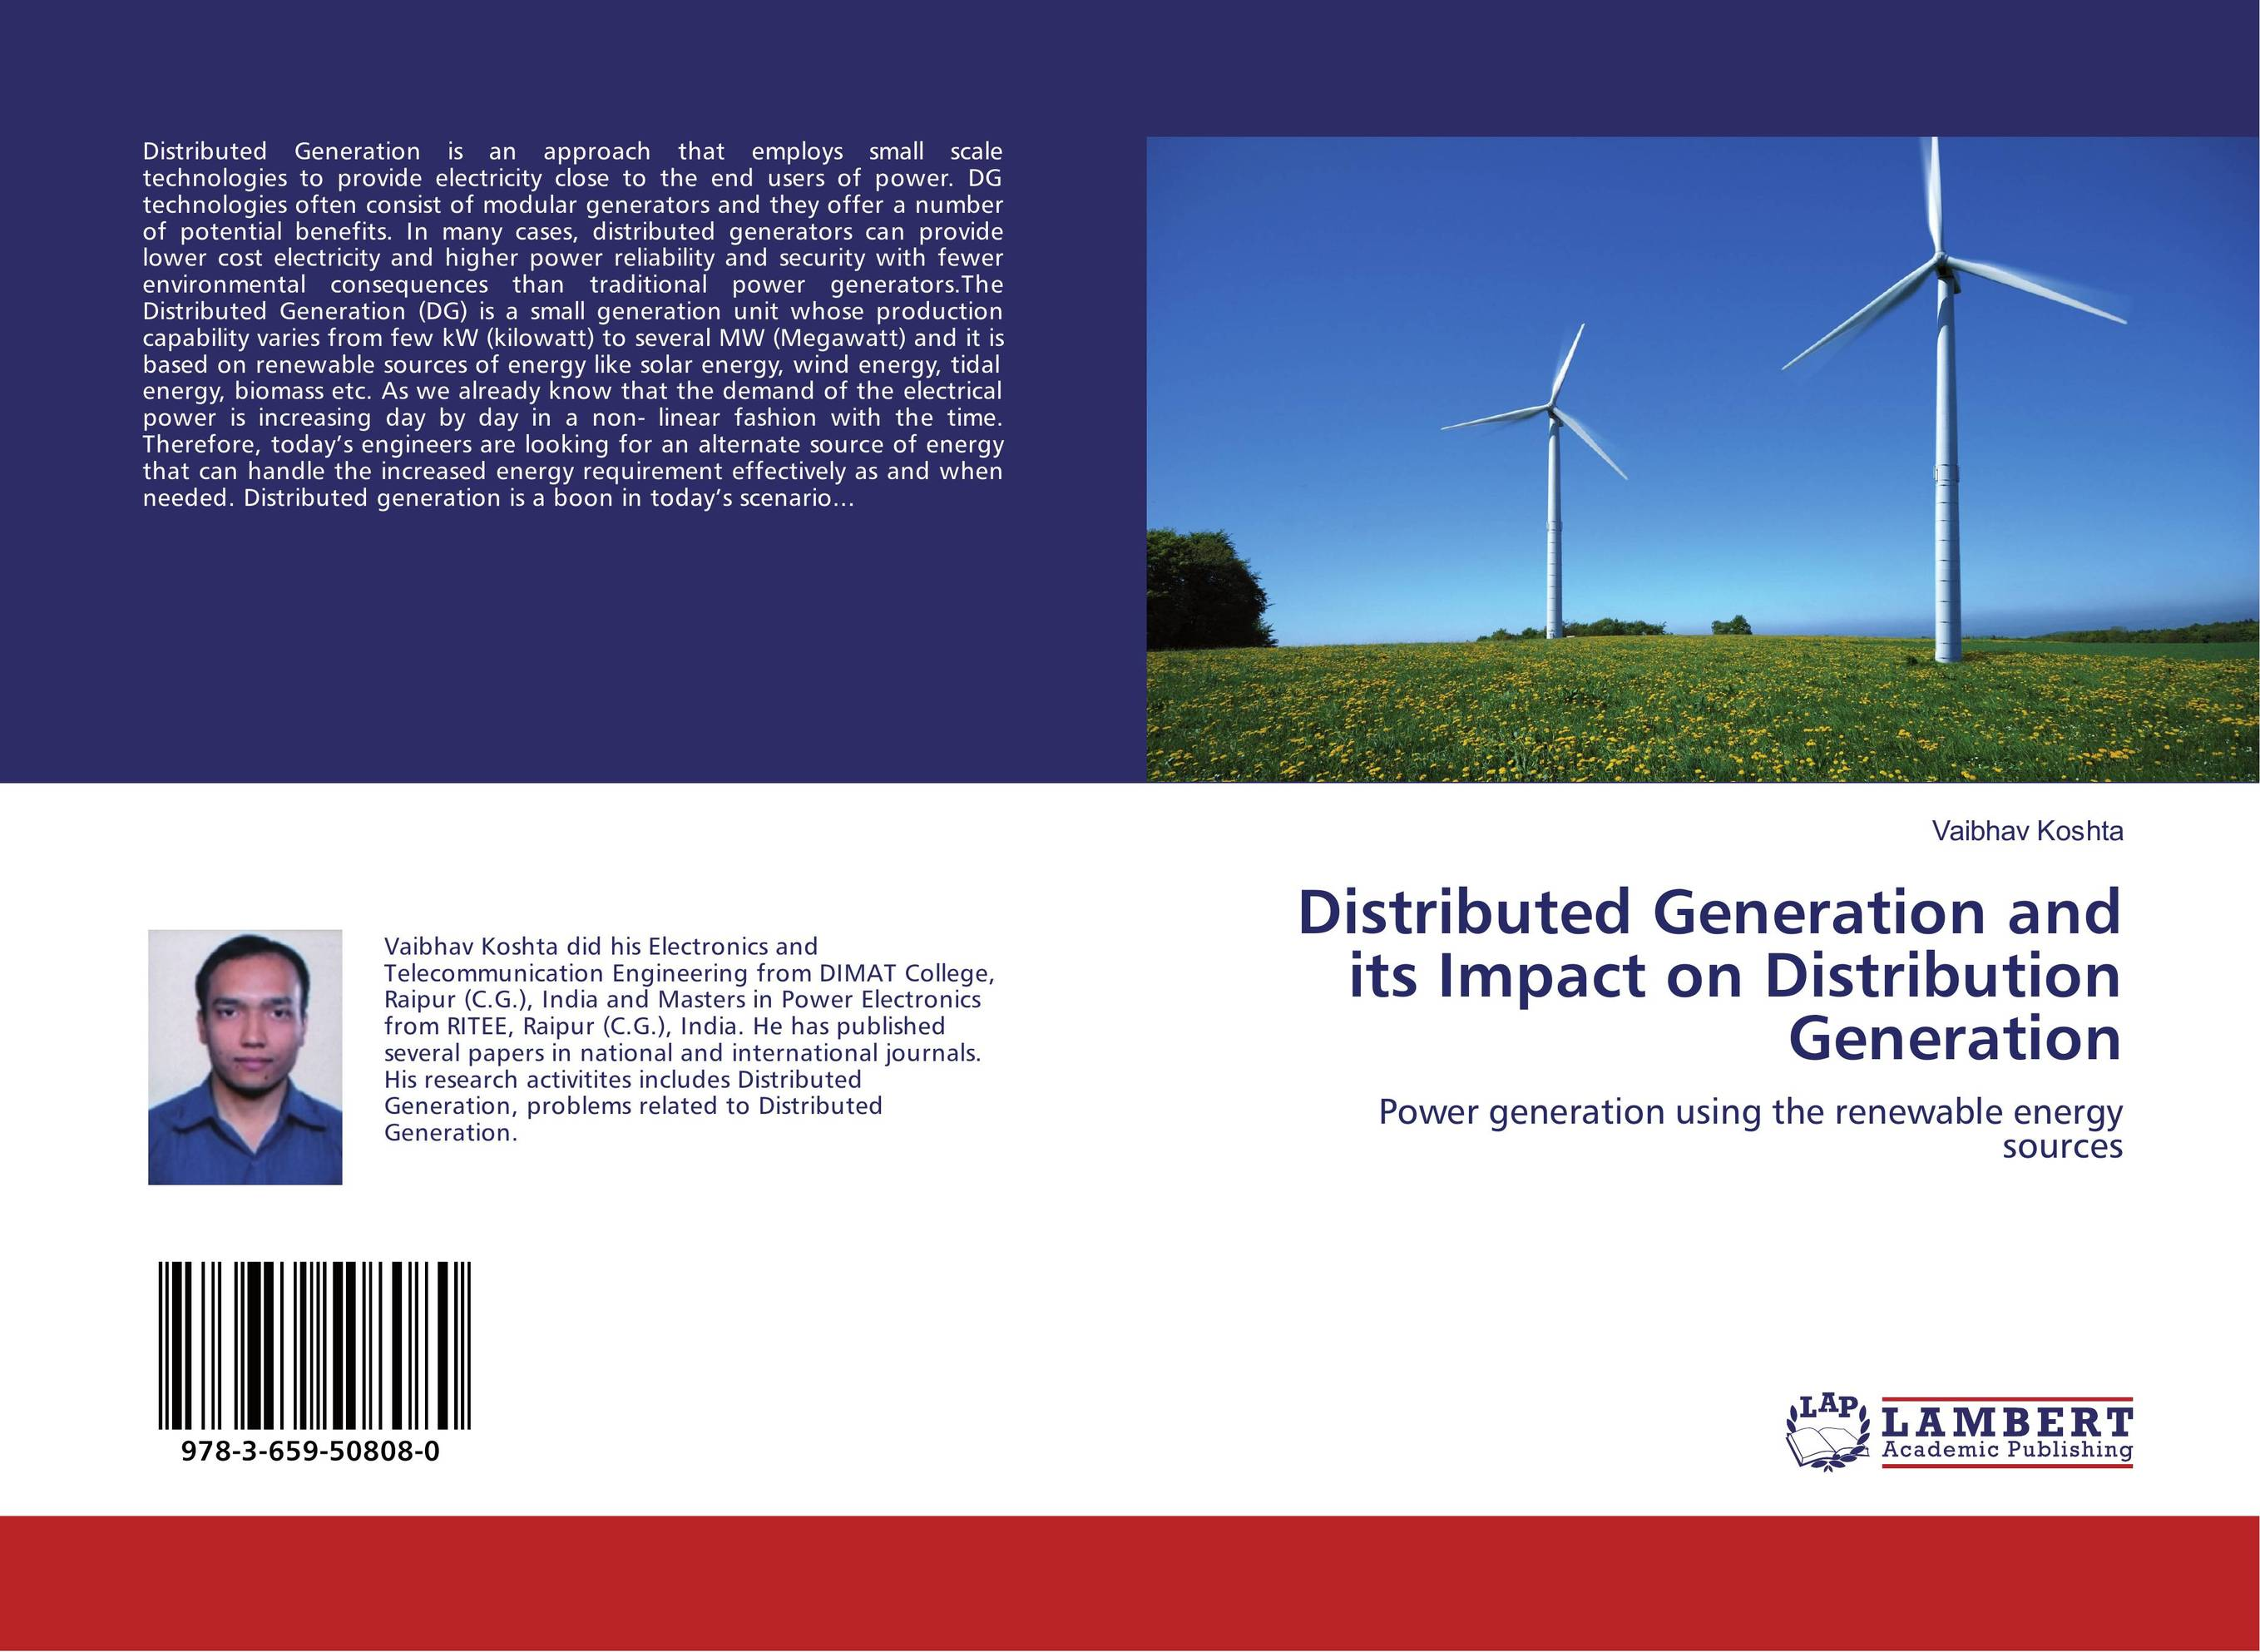 research paper alternative energy sources The energy efficiency and renewable energy (eere) postdoctoral research awards are intended to be an avenue for significant energy efficiency and renewable energy innovation.